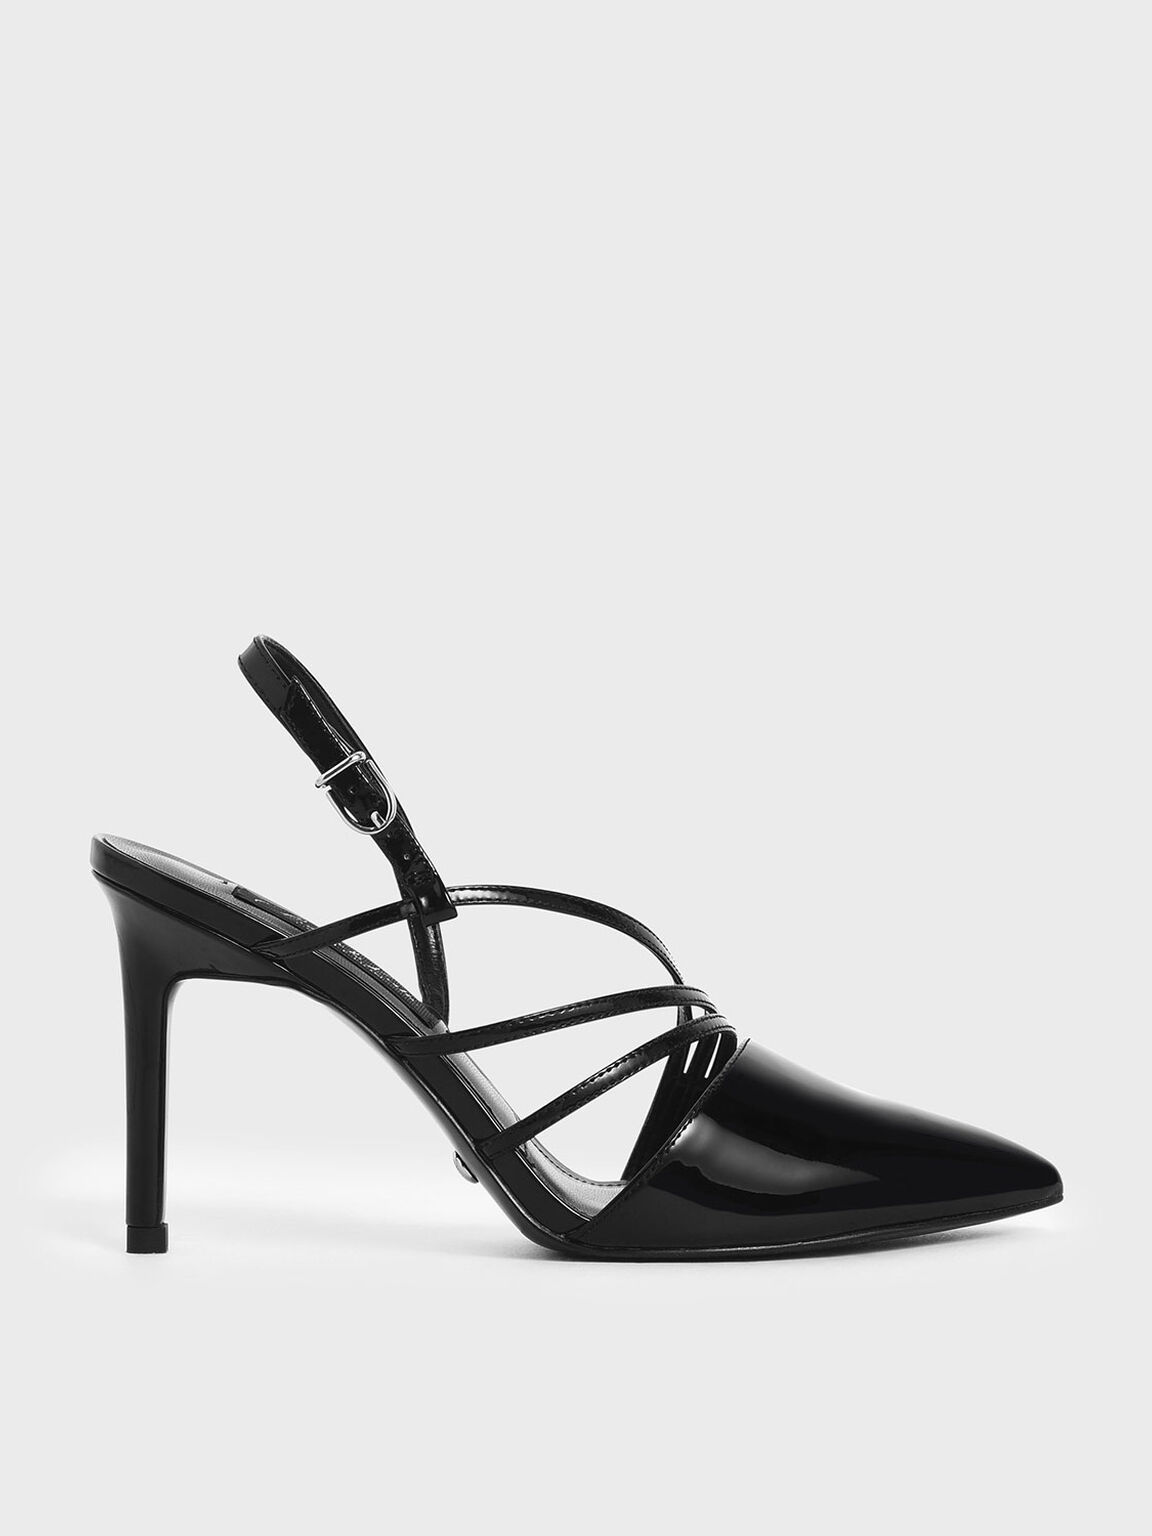 Patent Leather Strappy Slingback Heels, Black, hi-res